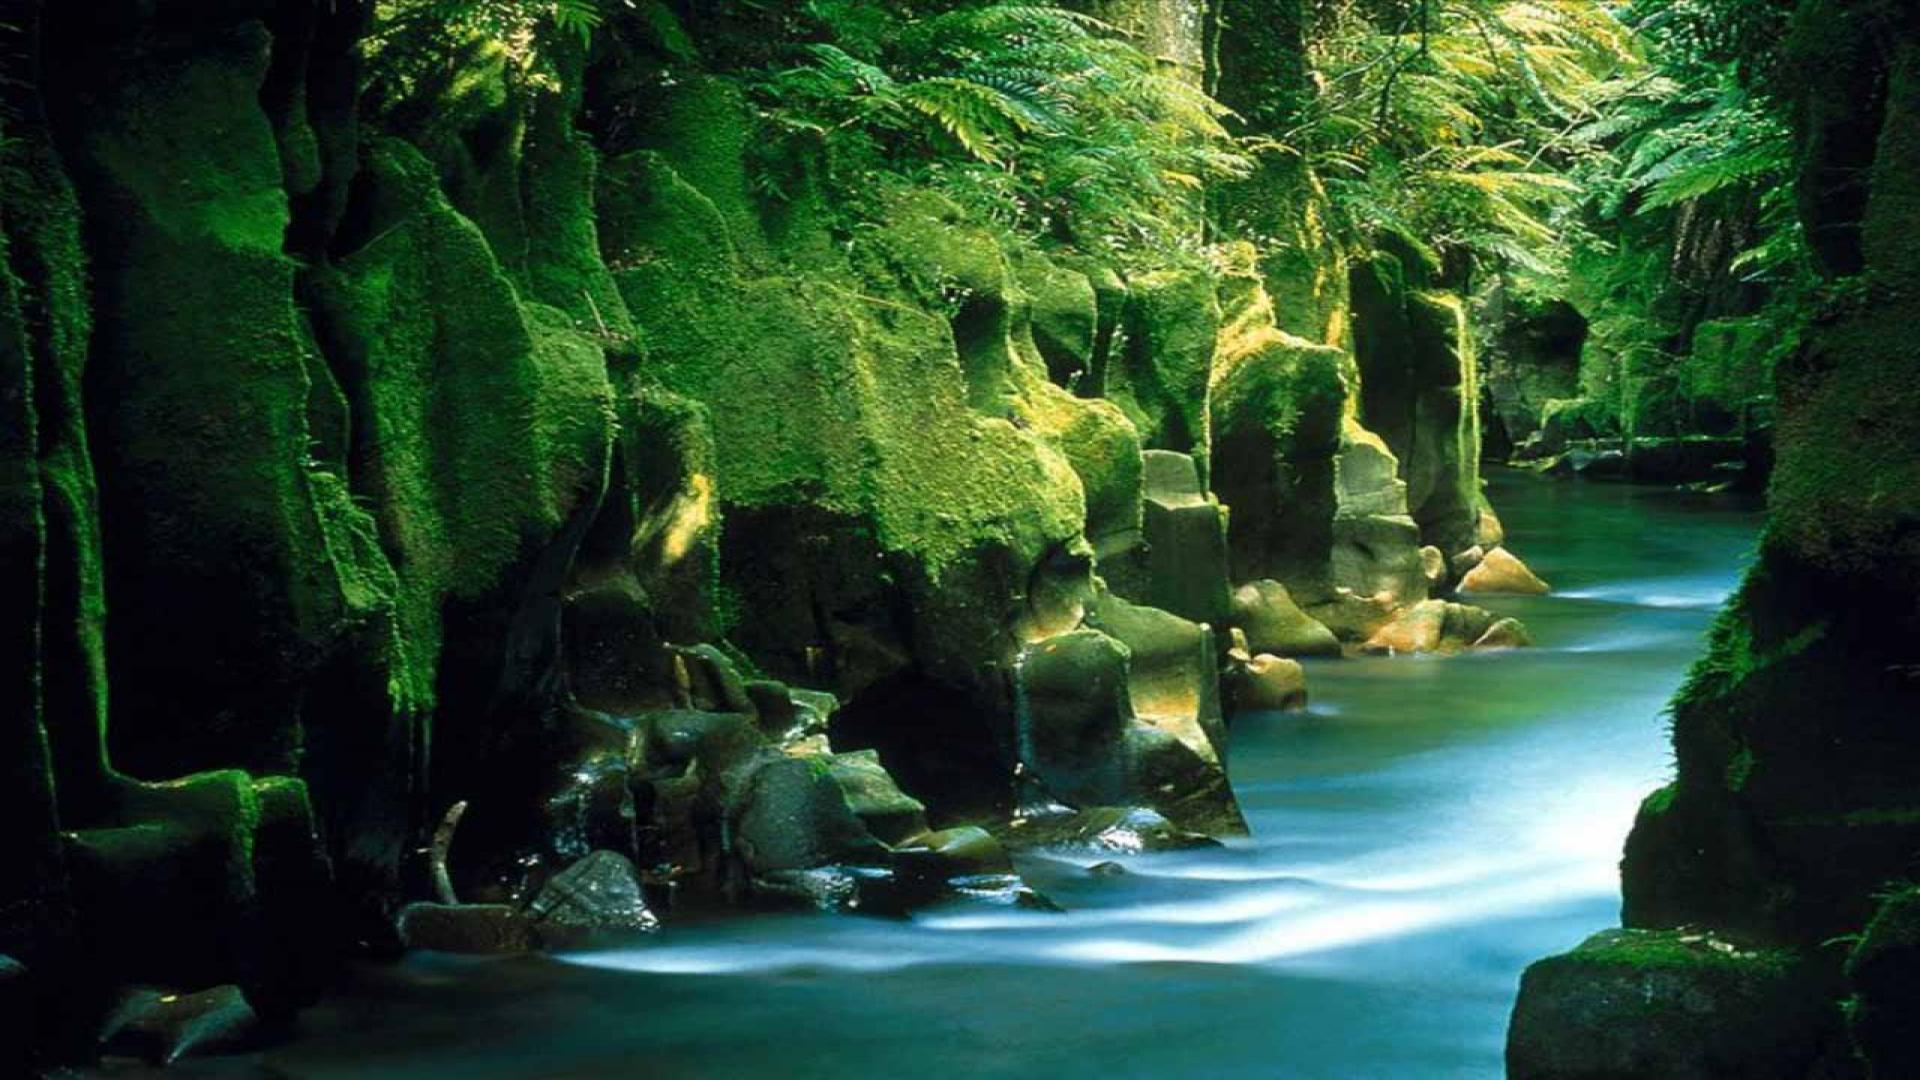 ... HD Wallpapers 1920x1080 Nature Landscape Wallpapers 1920x1080 Download